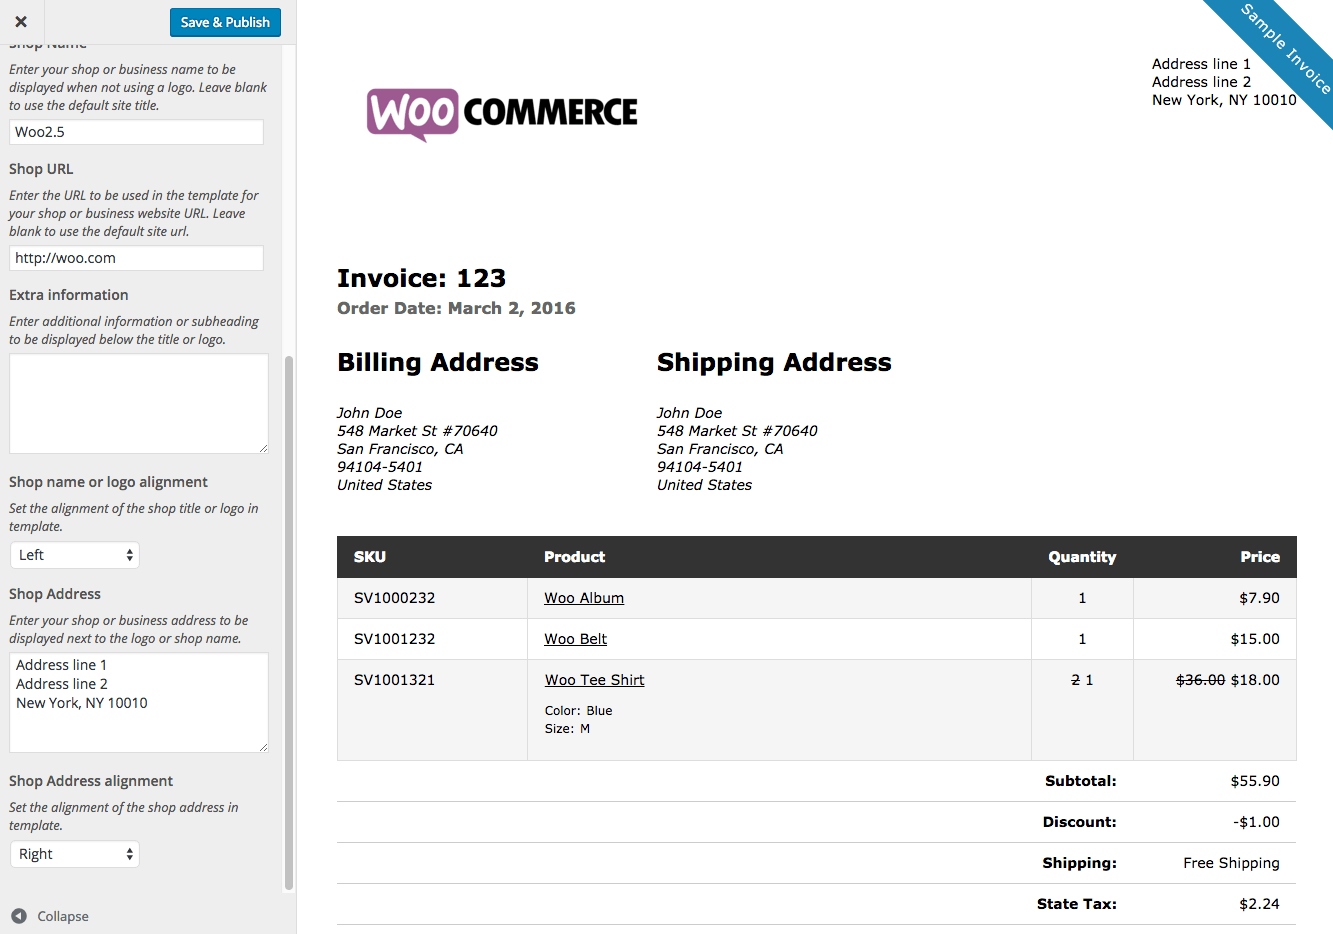 Shopdesignsus  Remarkable Print Invoices Amp Packing Lists  Woocommerce With Handsome Woocommerce Print Invoices  Packing Lists Customizer With Adorable American Eagle Return Policy Without Receipt Also Rent Receipt Format Uk In Addition Rite Aid Return Policy Without Receipt And Return Receipt For Merchandise As Well As Security Deposit Receipt Form Additionally Best Scanner For Receipts From Woocommercecom With Shopdesignsus  Handsome Print Invoices Amp Packing Lists  Woocommerce With Adorable Woocommerce Print Invoices  Packing Lists Customizer And Remarkable American Eagle Return Policy Without Receipt Also Rent Receipt Format Uk In Addition Rite Aid Return Policy Without Receipt From Woocommercecom